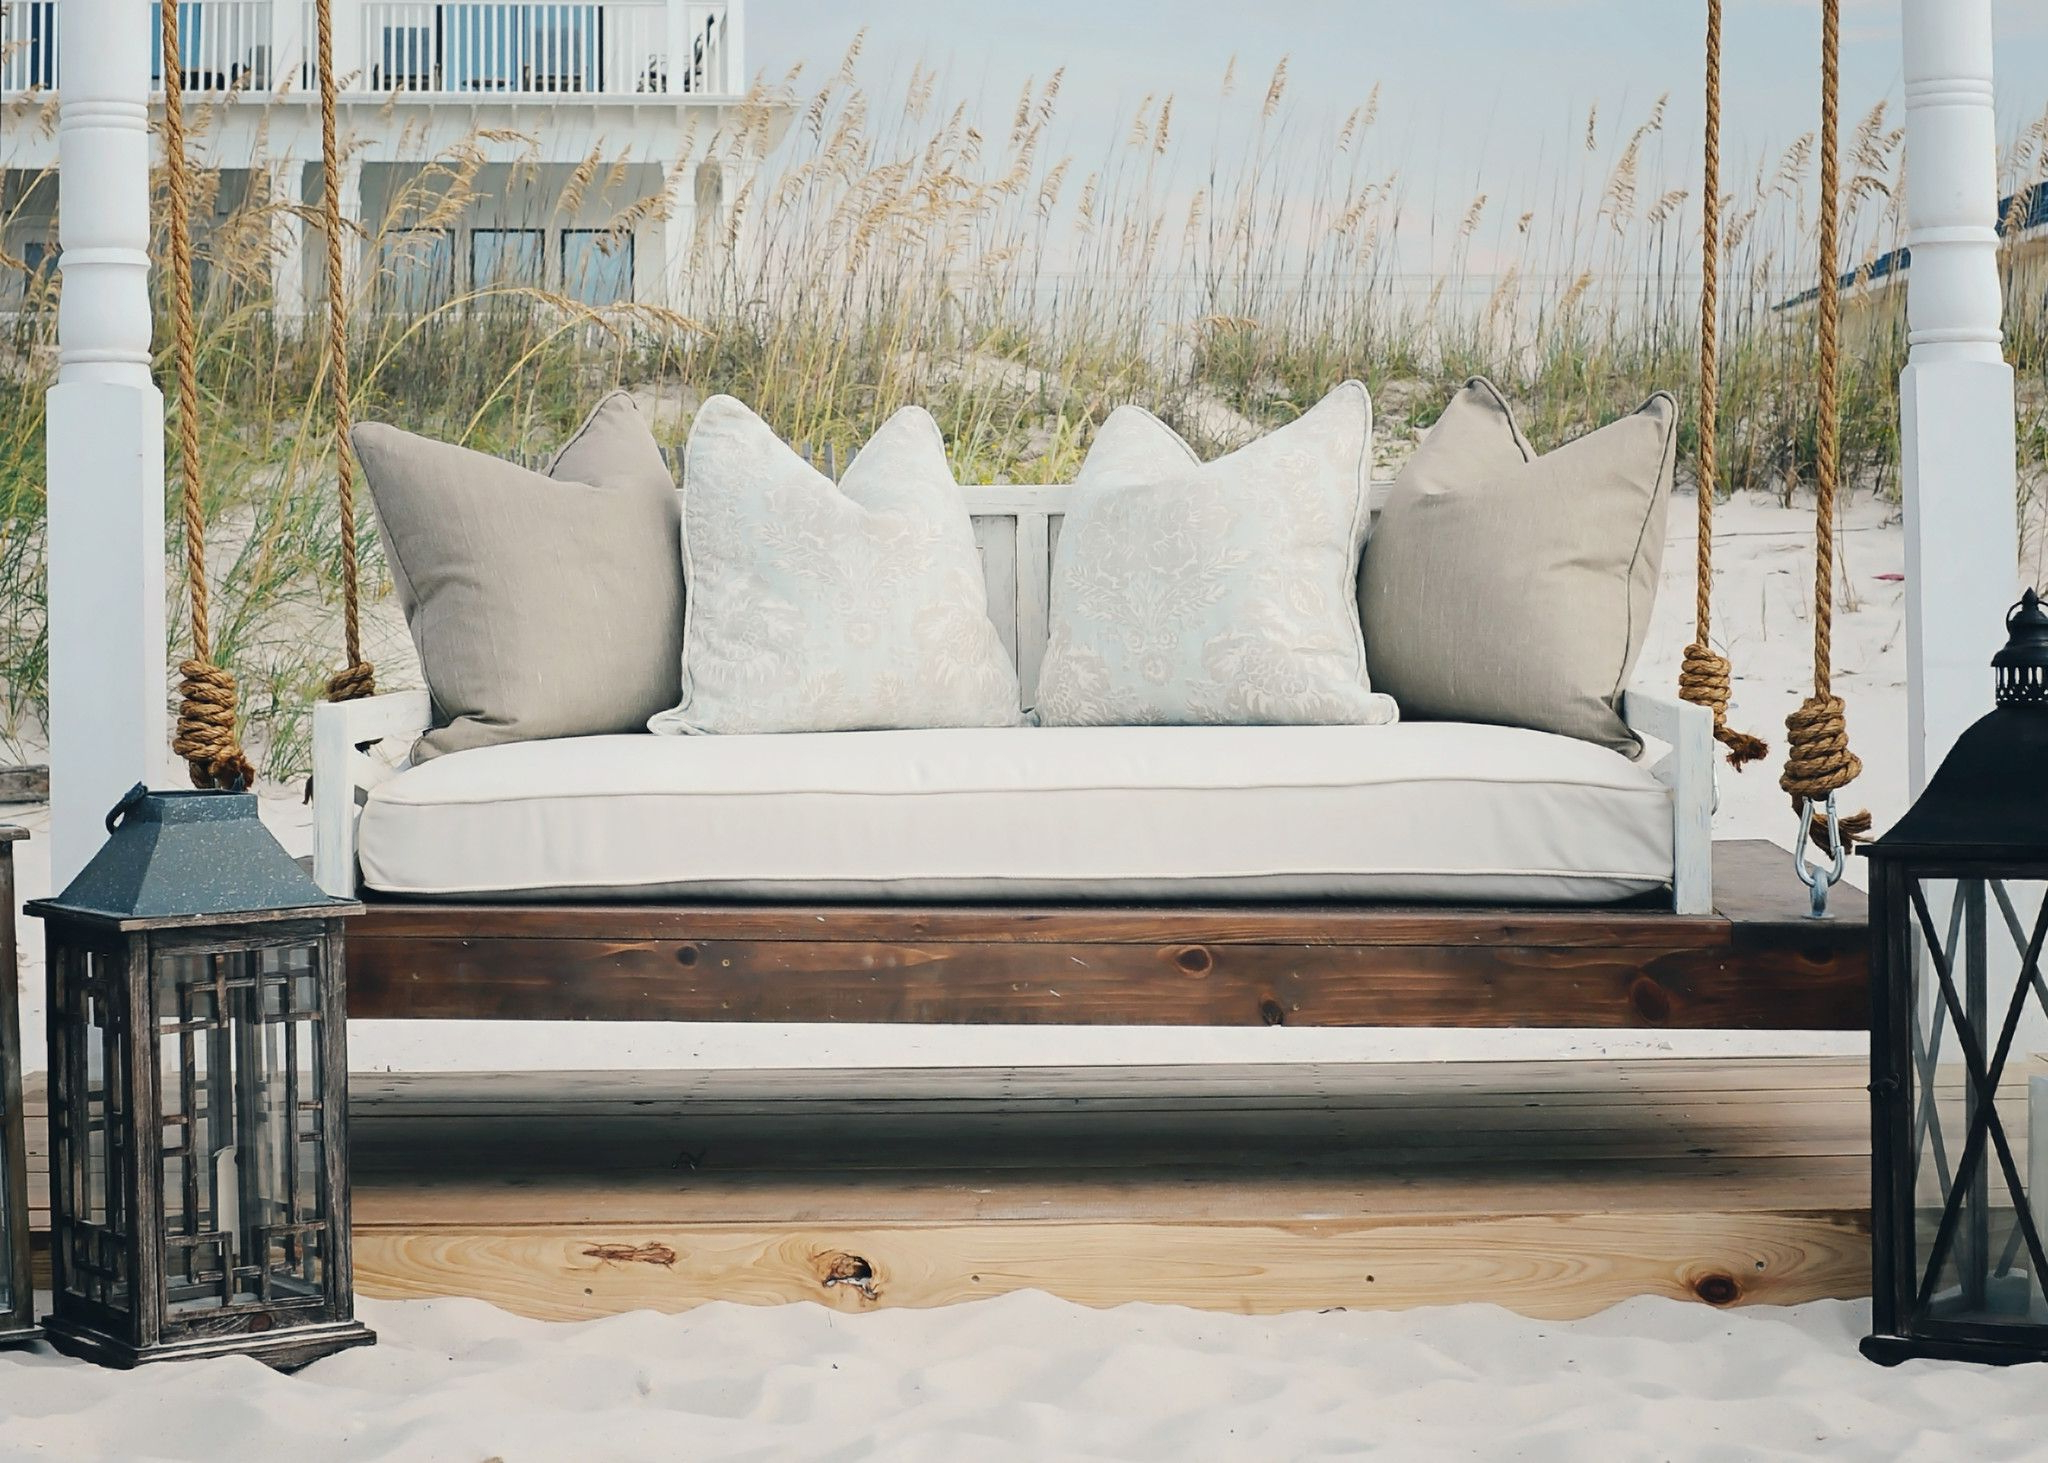 Outdoor Daybed, Porch Swing Cushions, Porch Swing (Gallery 4 of 30)